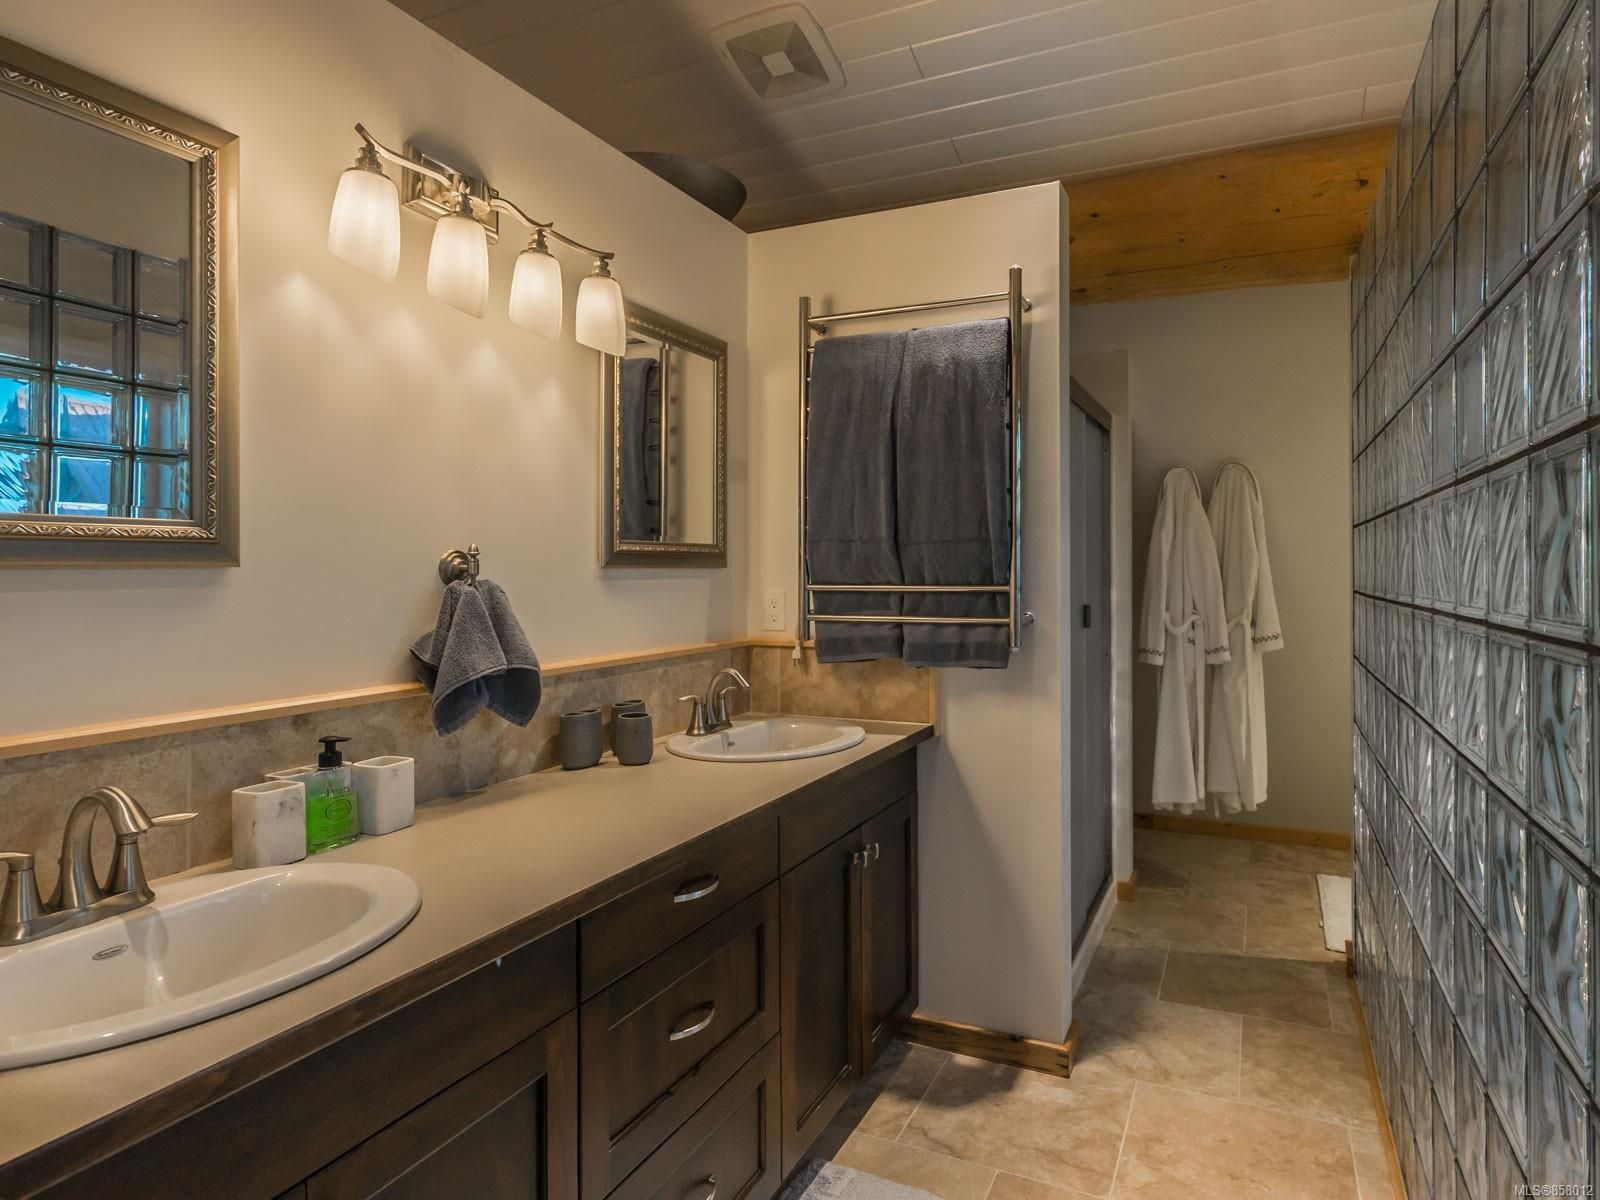 Photo 51: Photos: 6030 MINE Rd in : NI Port McNeill House for sale (North Island)  : MLS®# 858012